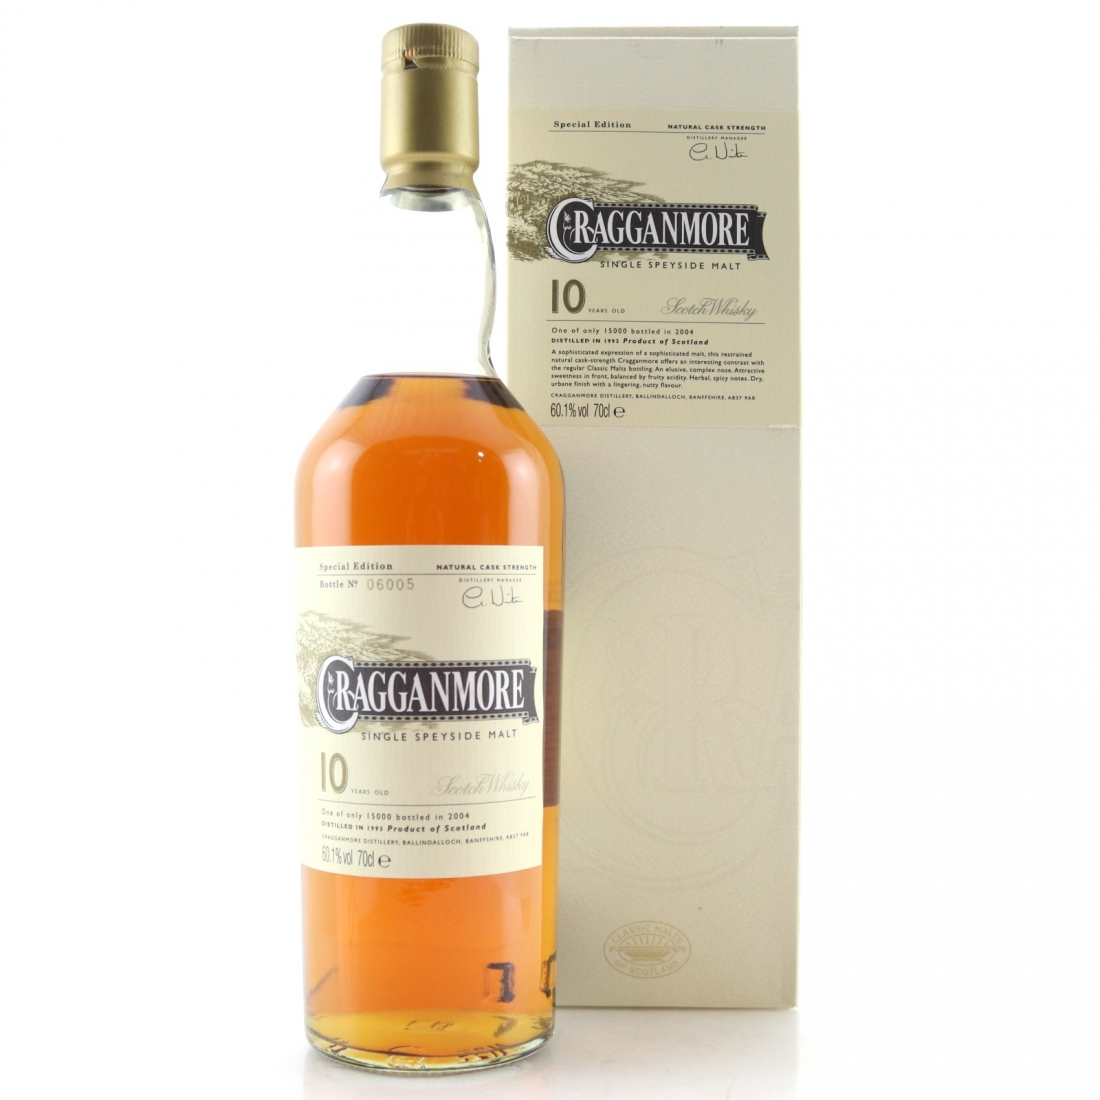 Cragganmore 1993 Cask Strength 10 Year Old